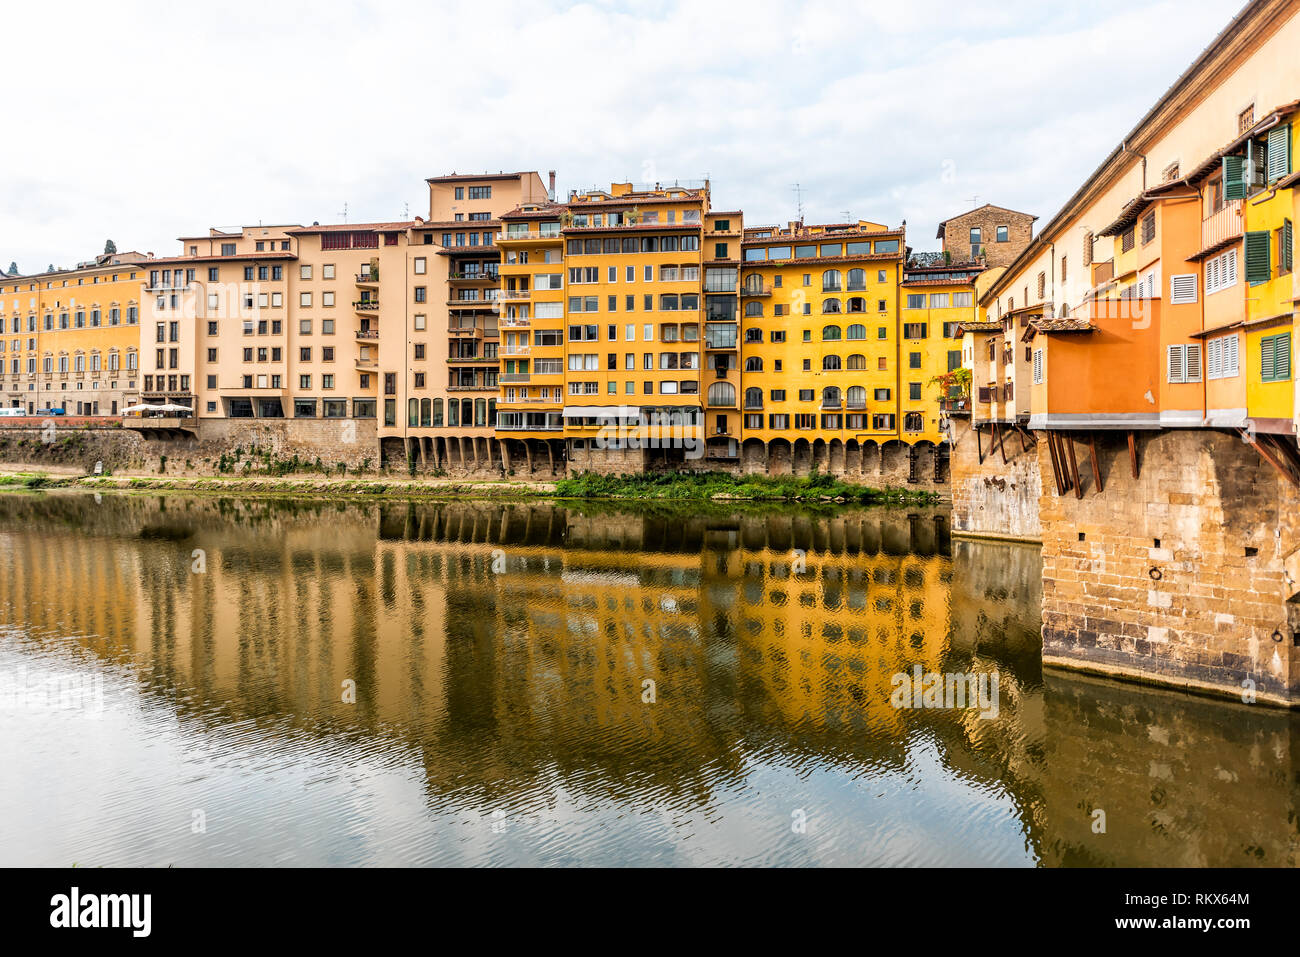 Florence, Italy Firenze orange yellow colorful building on Ponte Vecchio by Arno river during summer morning in Tuscany with nobody vibrant - Stock Image